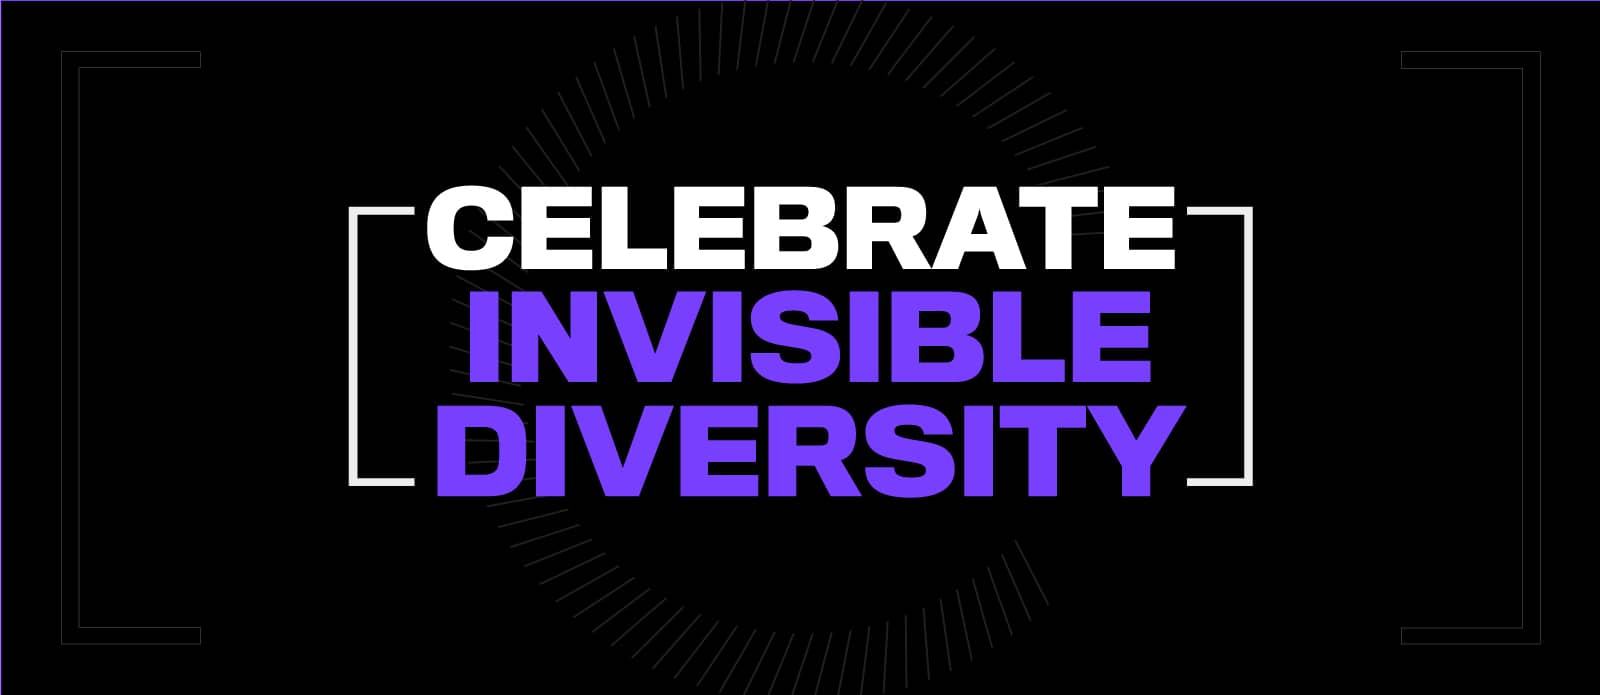 Inclusive College and University Photography: Celebrating Invisible Diversity on Campus